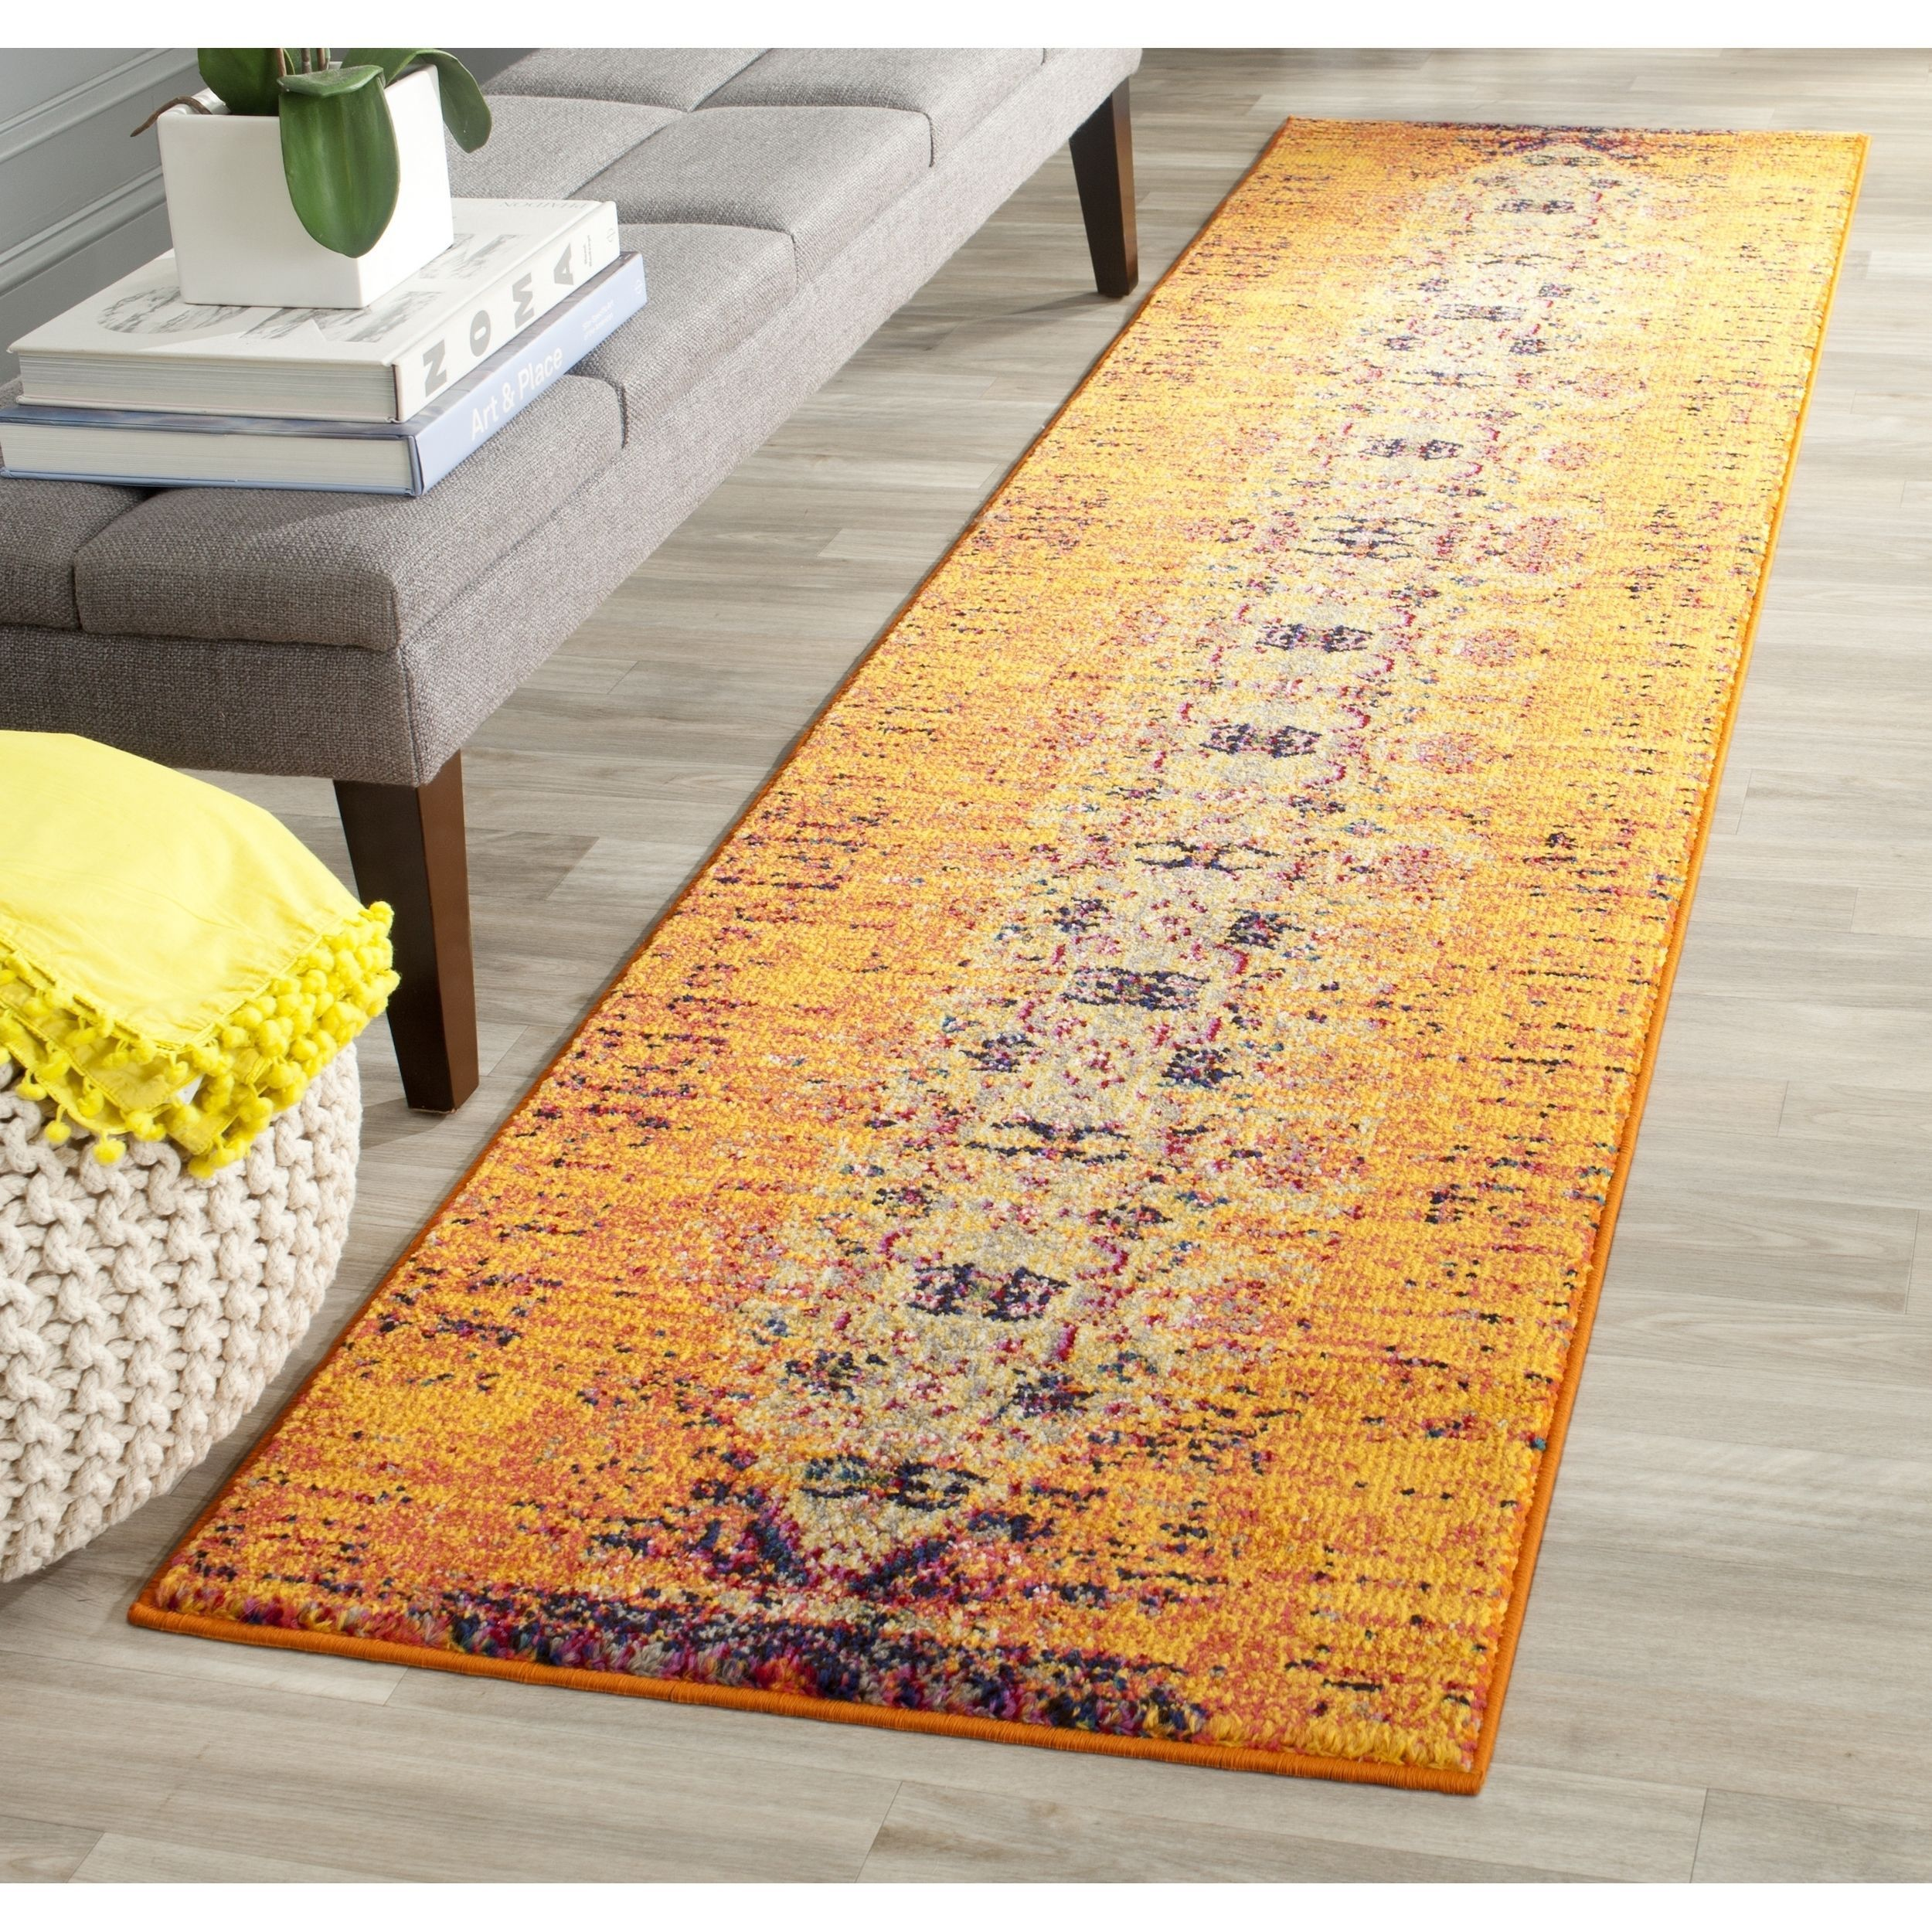 2 X 12 14 15 Runner Rugs Use In Hallways And On Stairs To Protect Your Flooring Absorb Noise Create An Inviting Feel